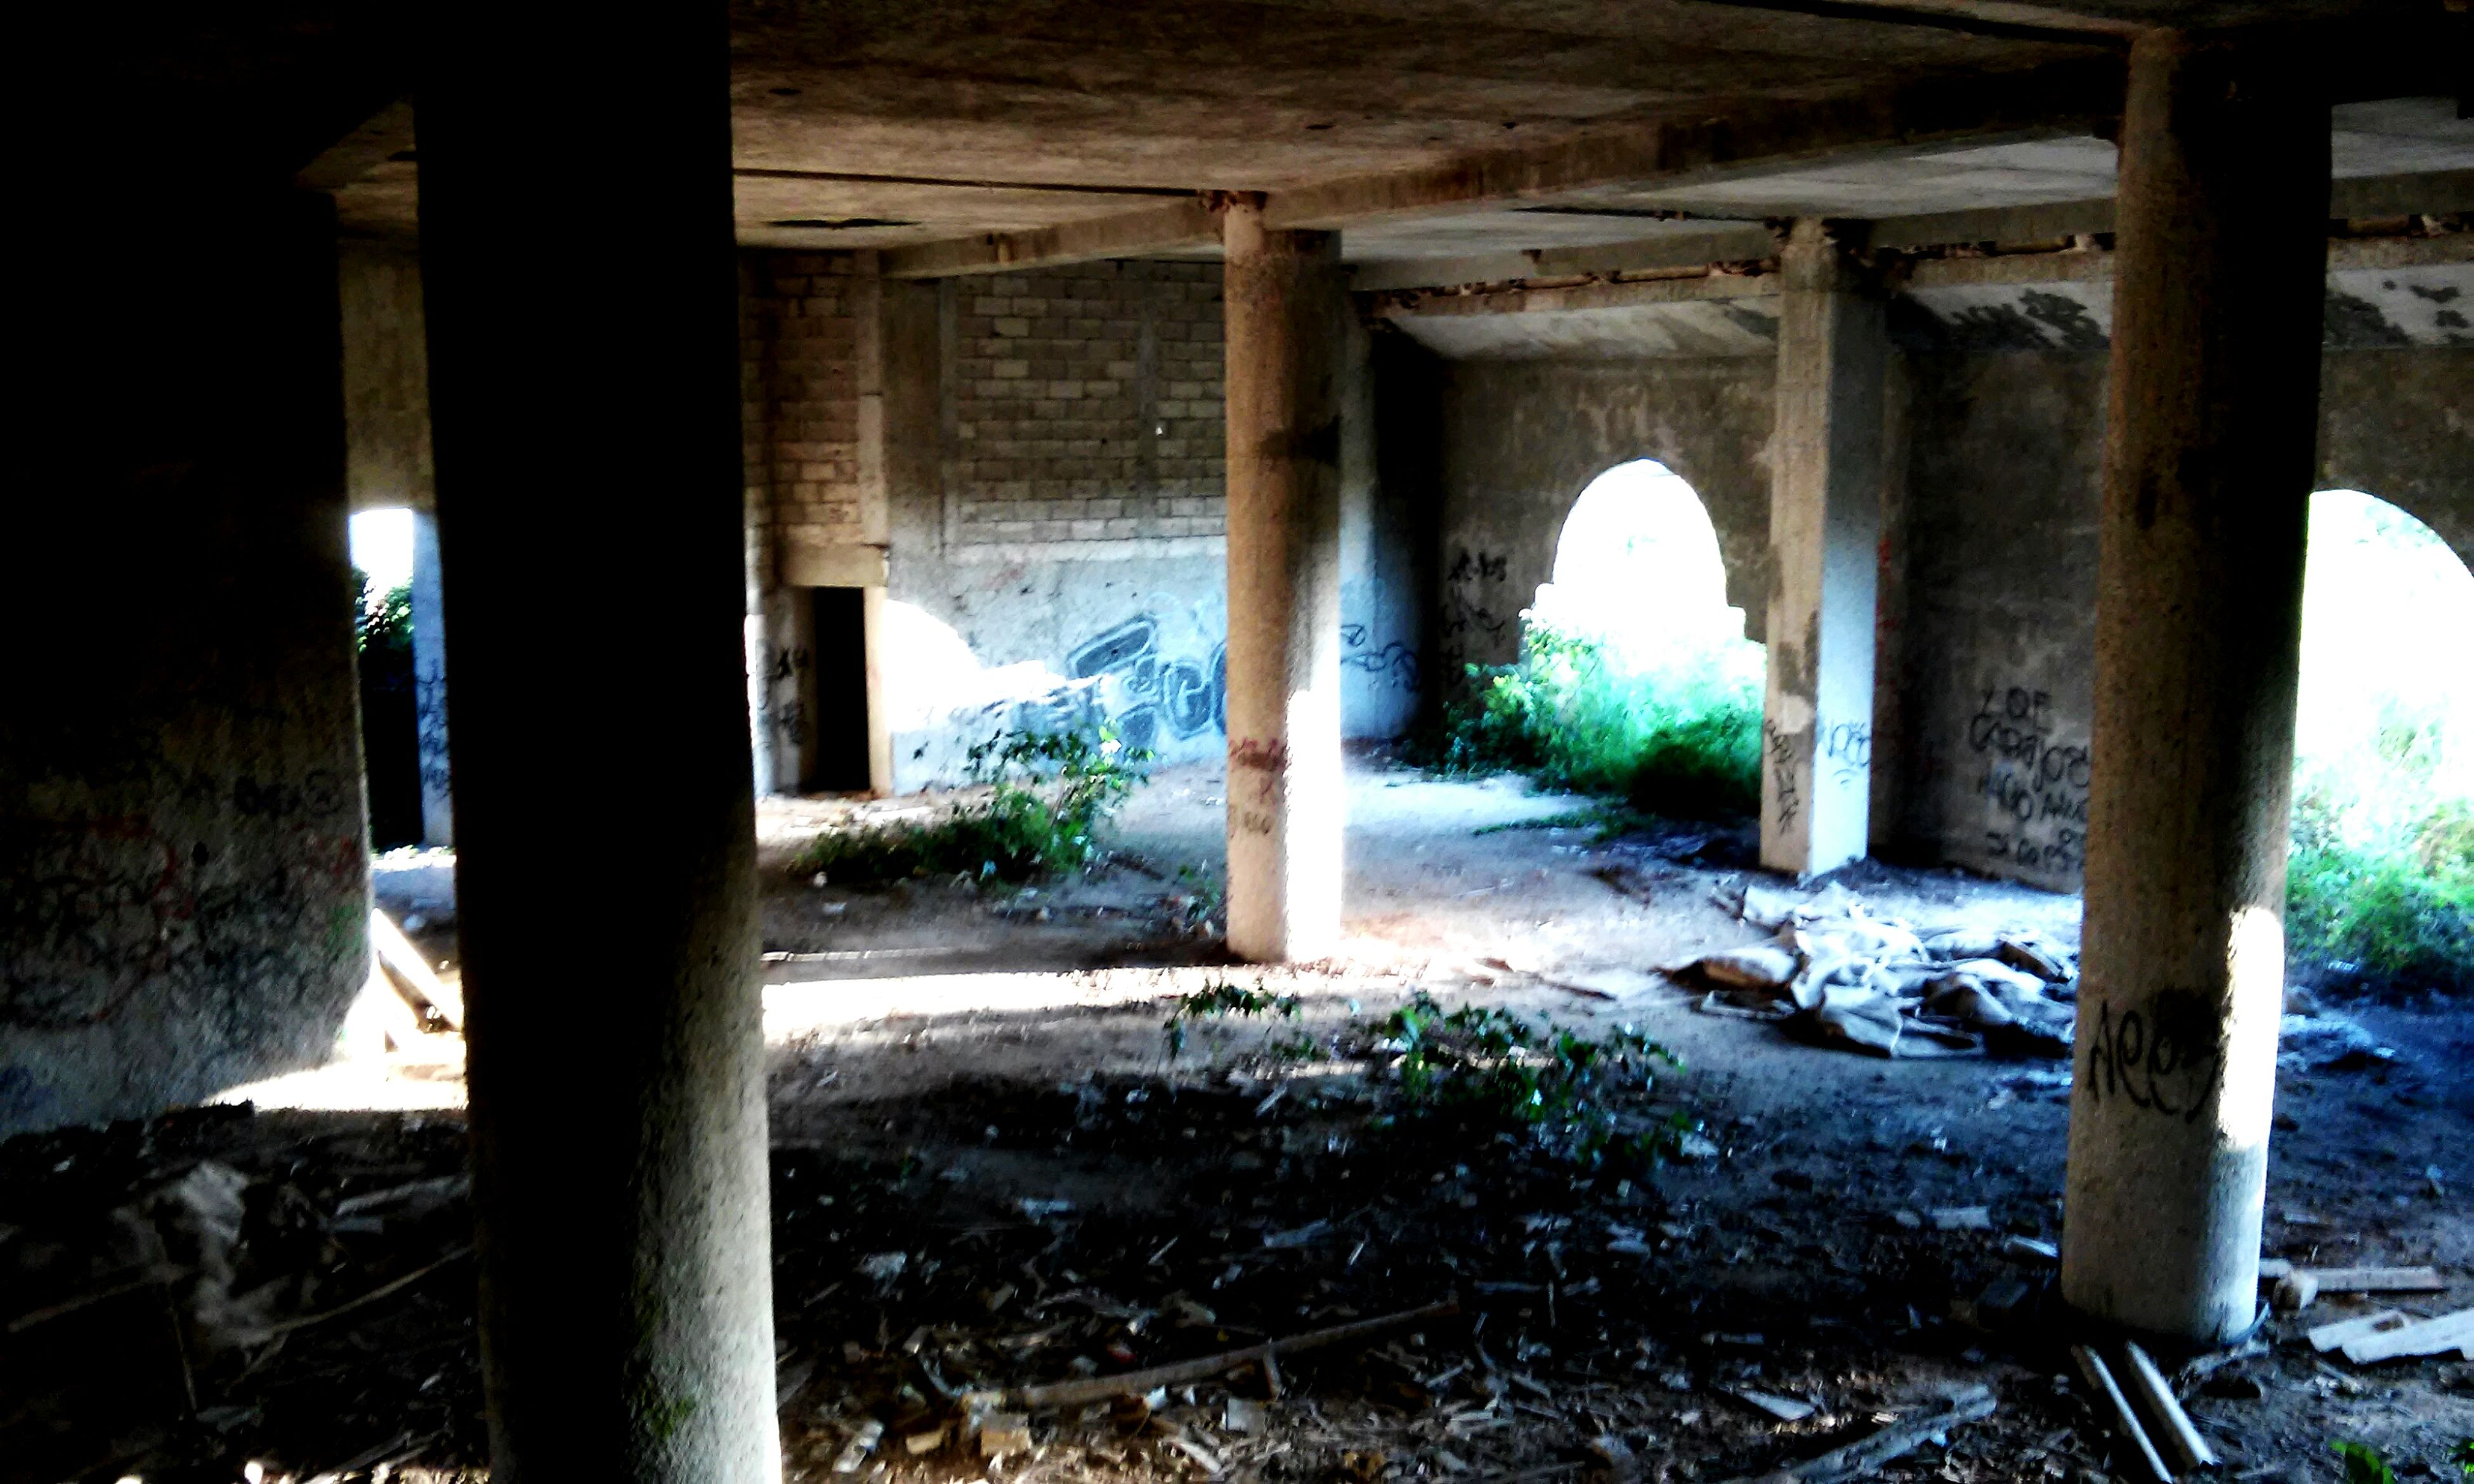 built structure, architecture, architectural column, indoors, abandoned, column, old ruin, old, obsolete, damaged, run-down, sunlight, arch, ruined, support, deterioration, history, day, no people, weathered